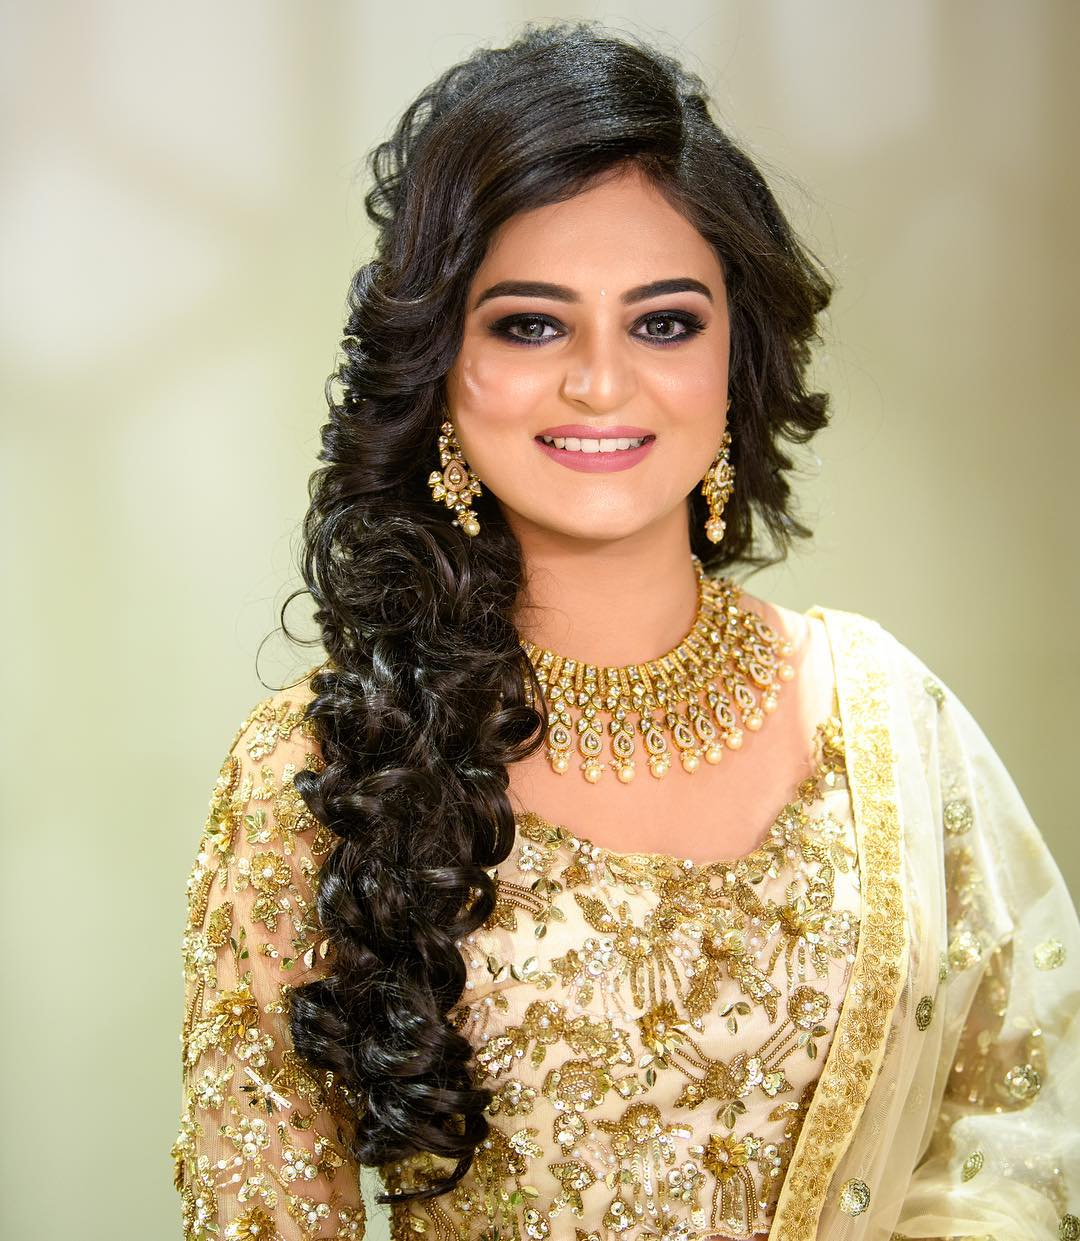 Soft curls: Floral hairstyles for Haldi and Mehendi Ceremonies!a